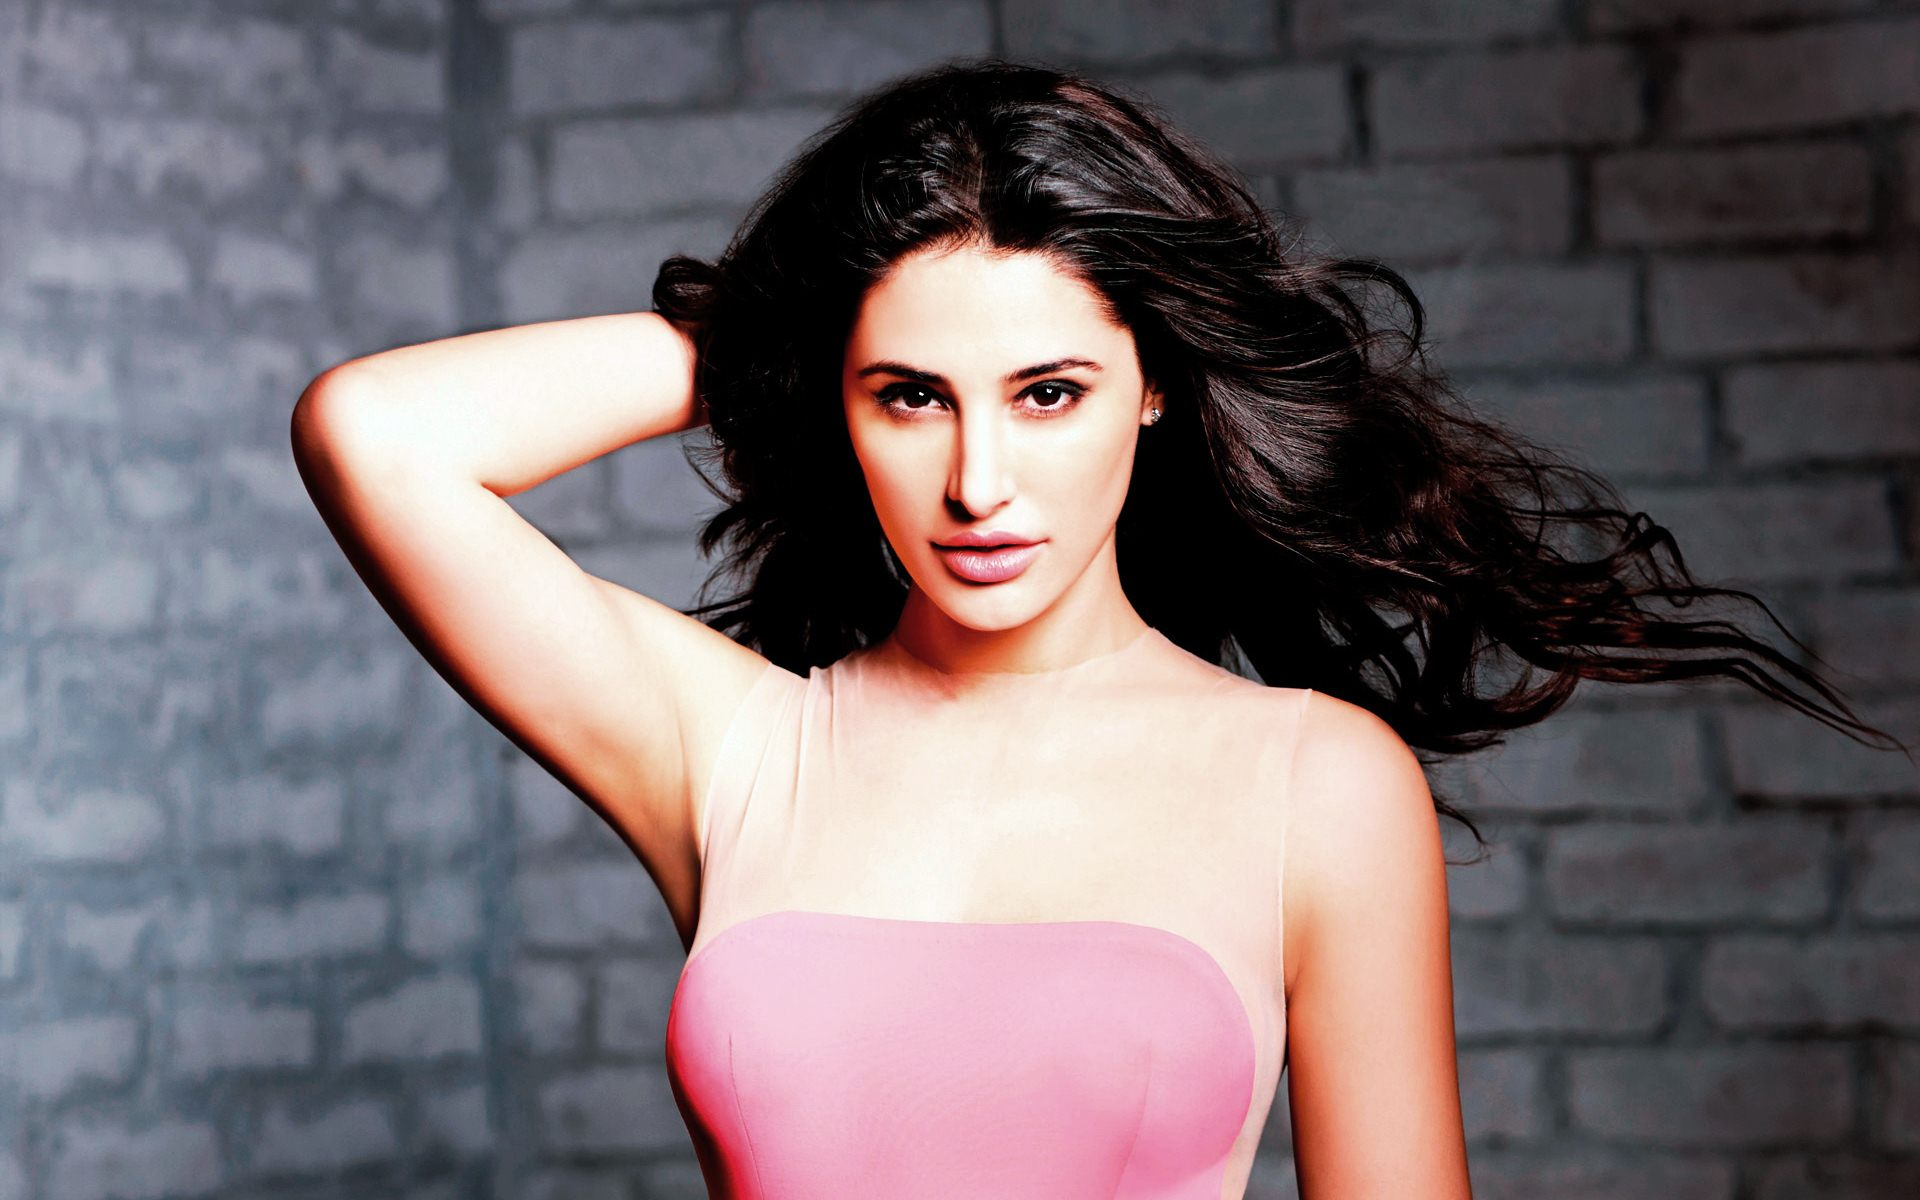 nargis fakhri wallpaper high definition perfect photo